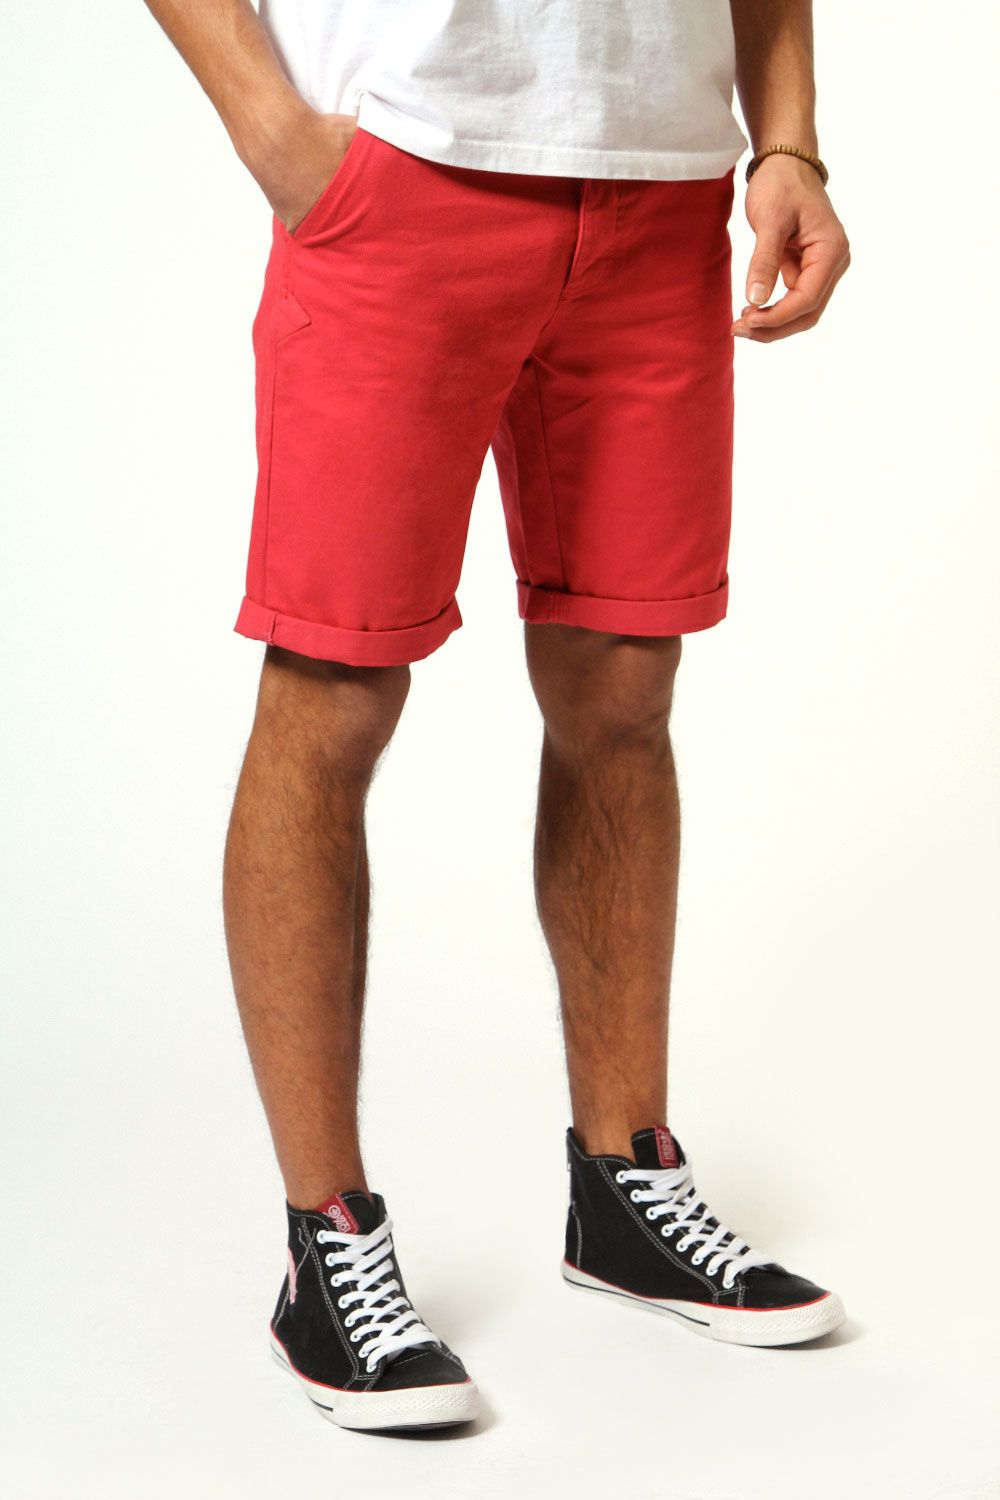 Casual spring style - Quarter zip sweater and twill shorts | Men's ...